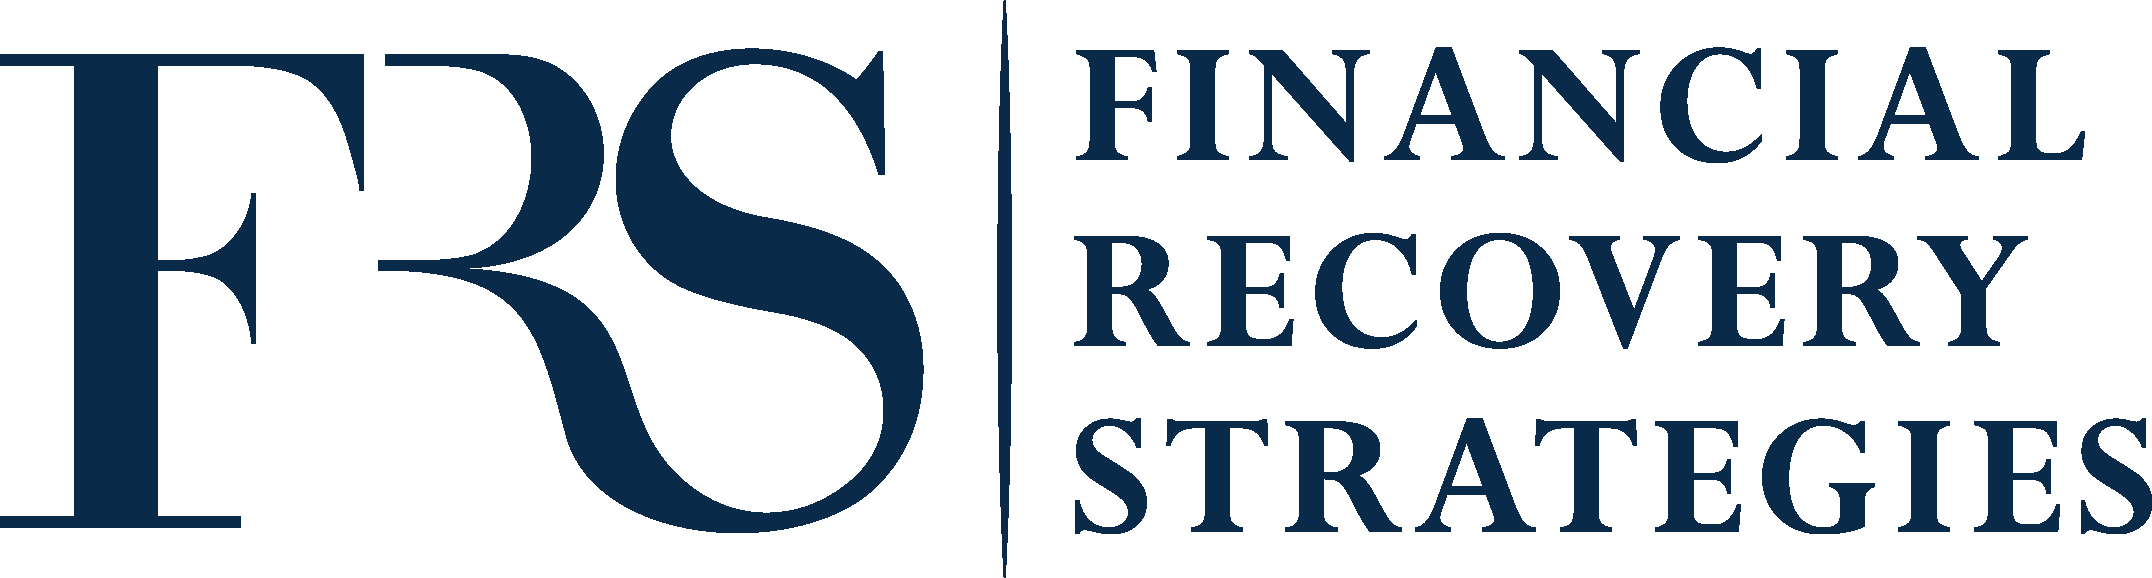 Financial Recovery Strategies